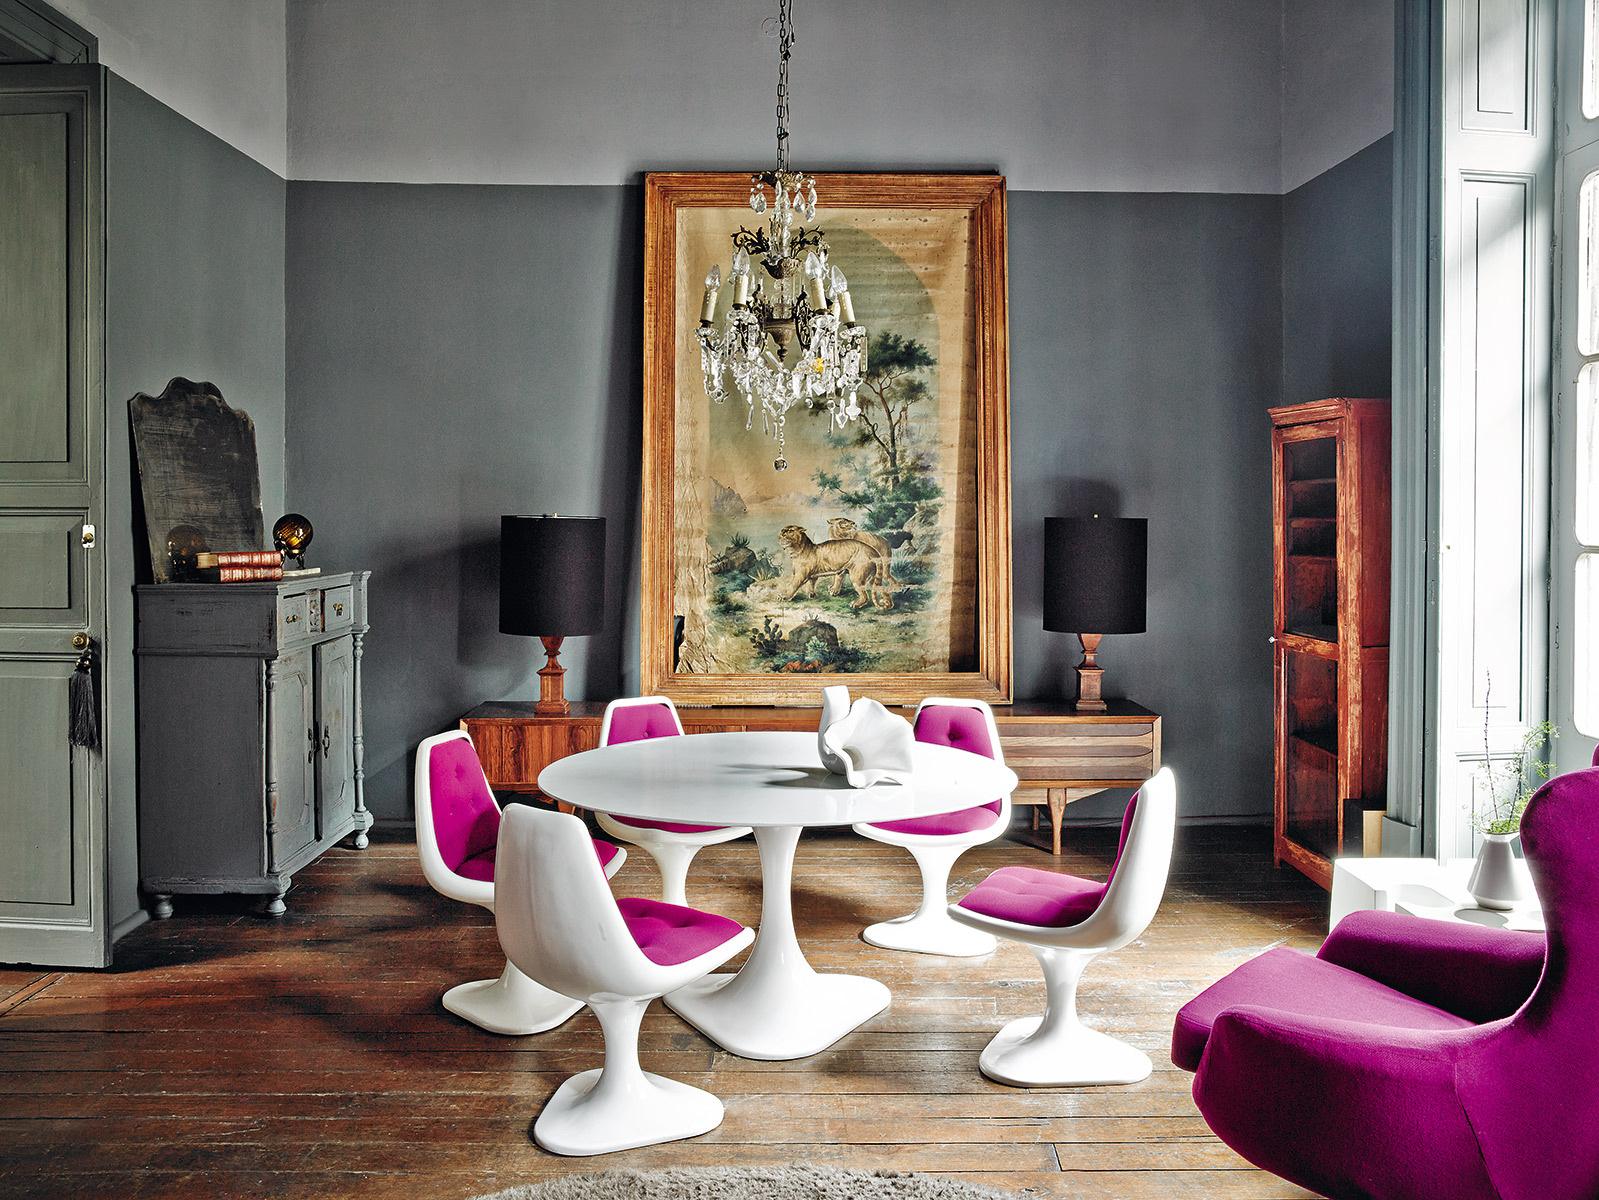 Project Fairytale: Bold Colors in Mexico City